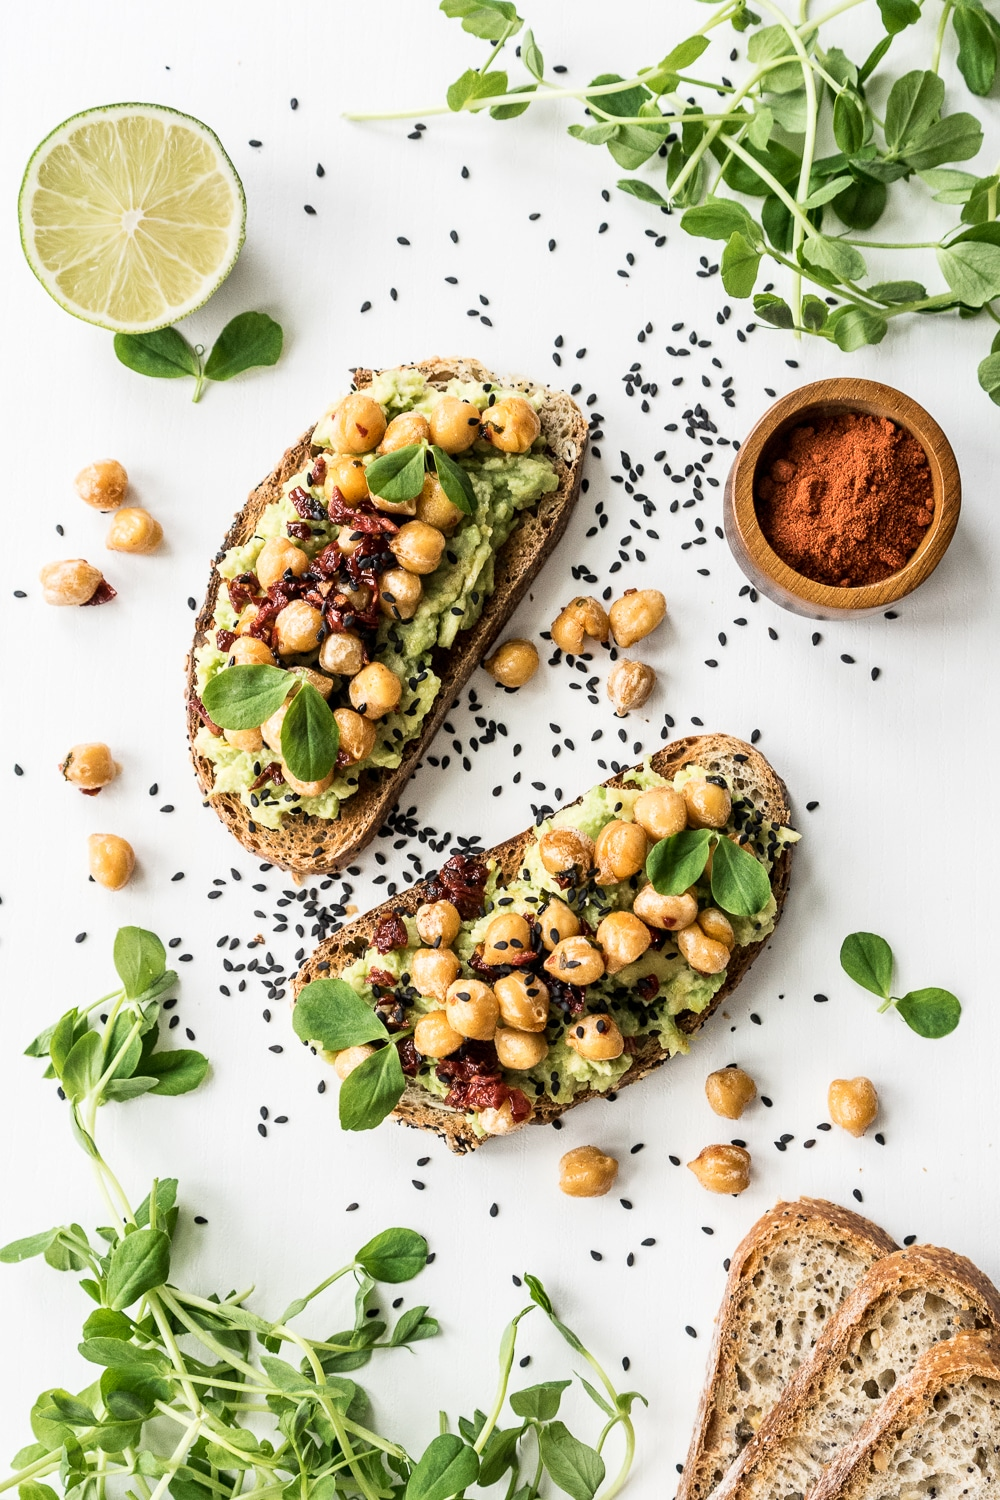 A Healthy Avocado Toast Recipe, the Vegan Way from Gathering Dreams. Get the recipe here. -